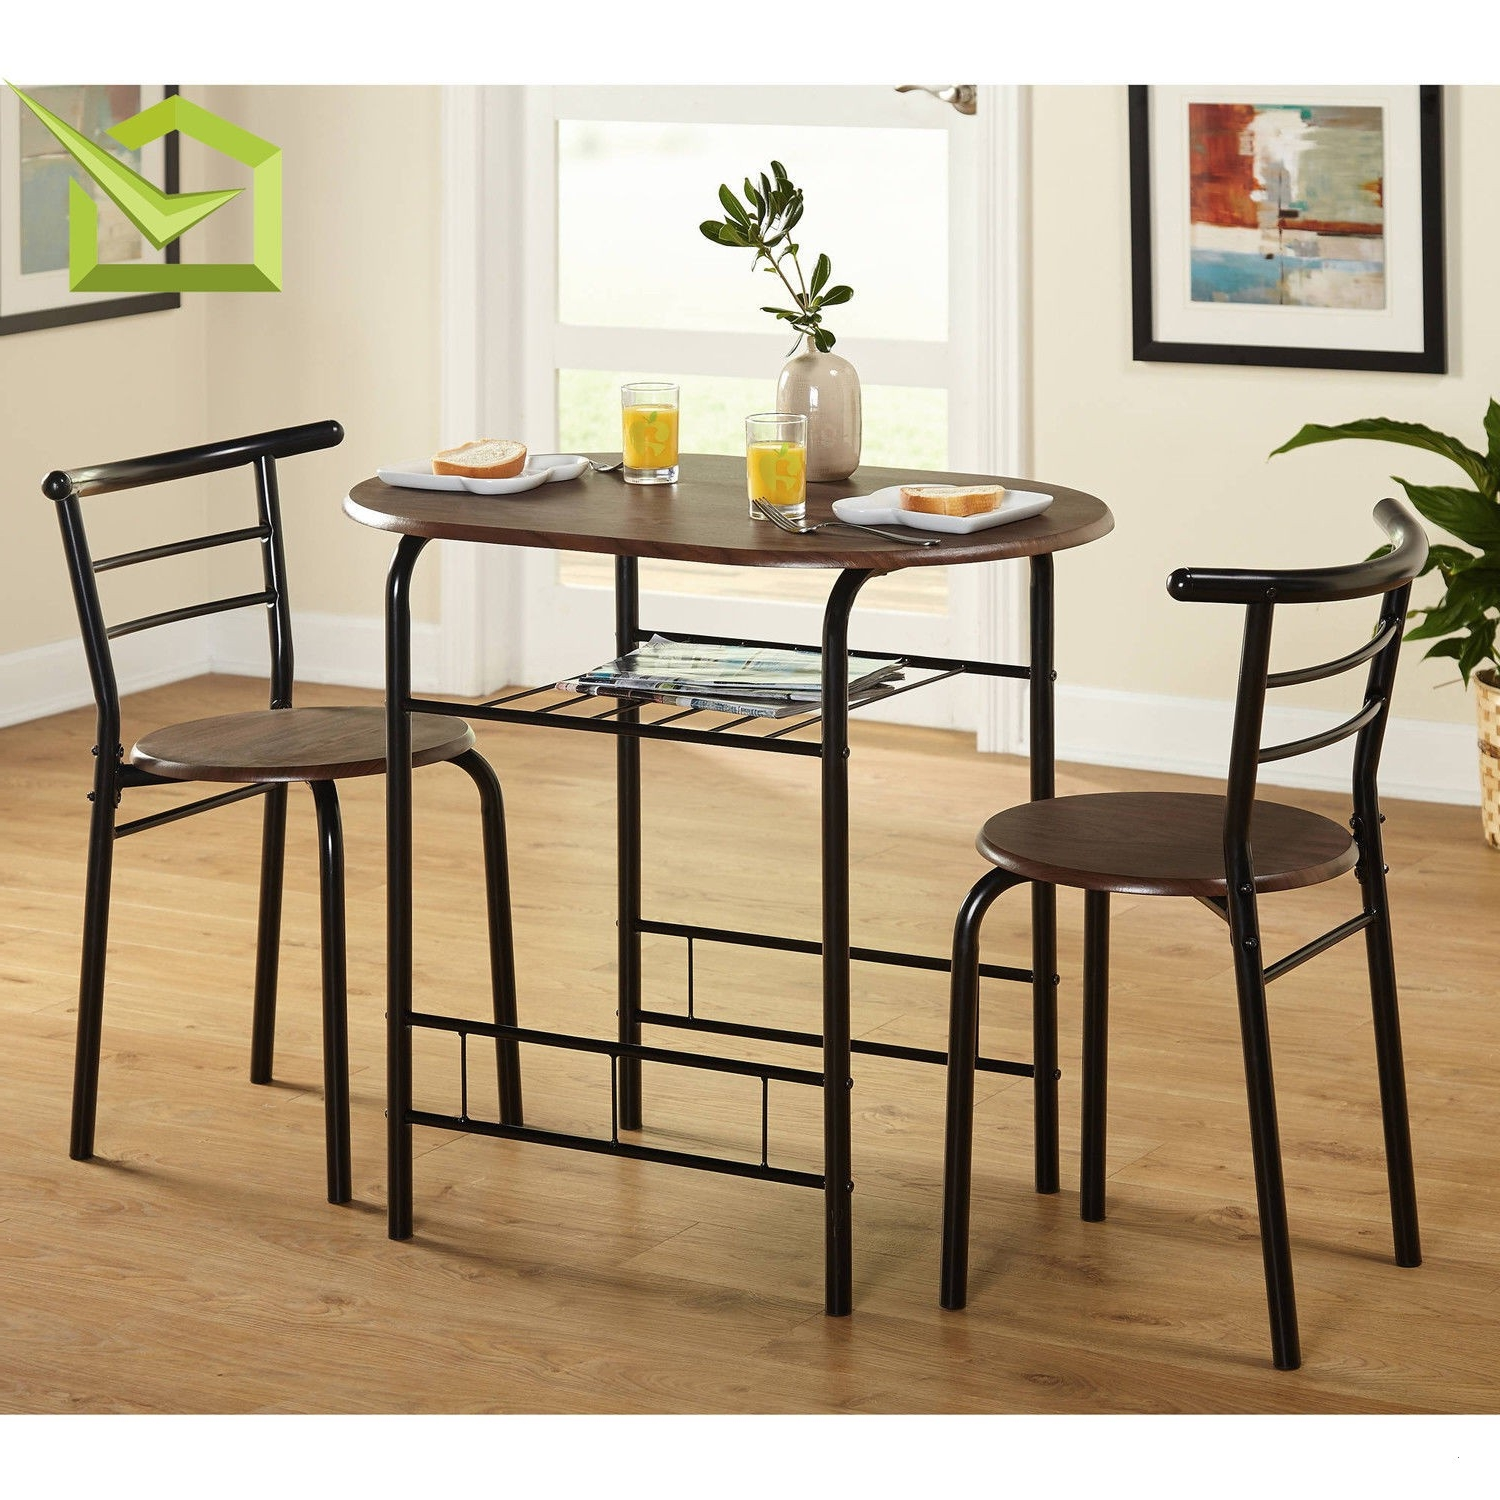 Small Two Person Dining Tables Within Preferred Drop Leaf Round Kitchen Table Inspirationa Small Drop Leaf Kitchen (View 16 of 25)